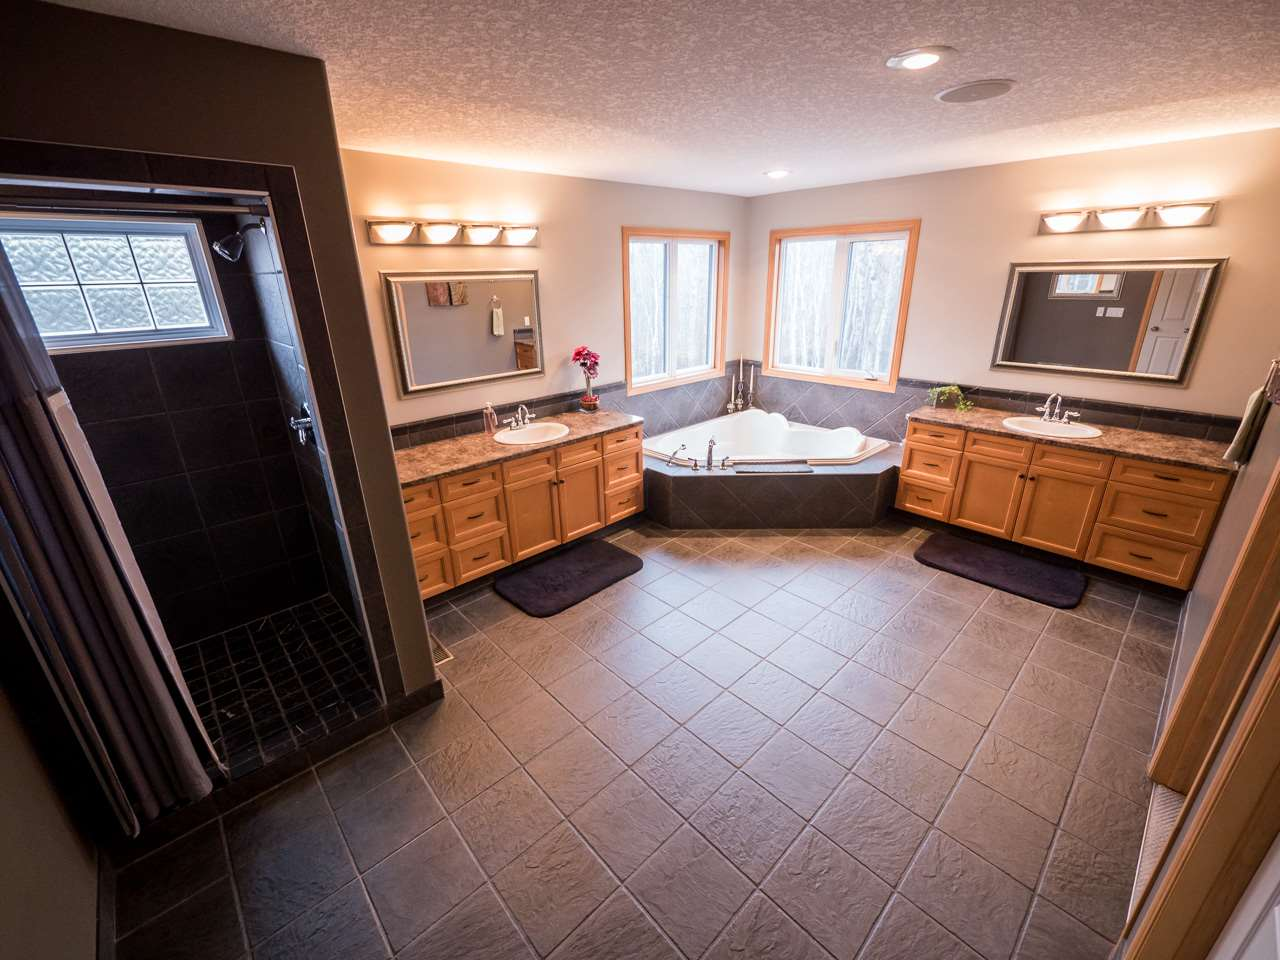 Photo 16: 51543 RR 220: Rural Strathcona County House for sale : MLS(r) # E4072257